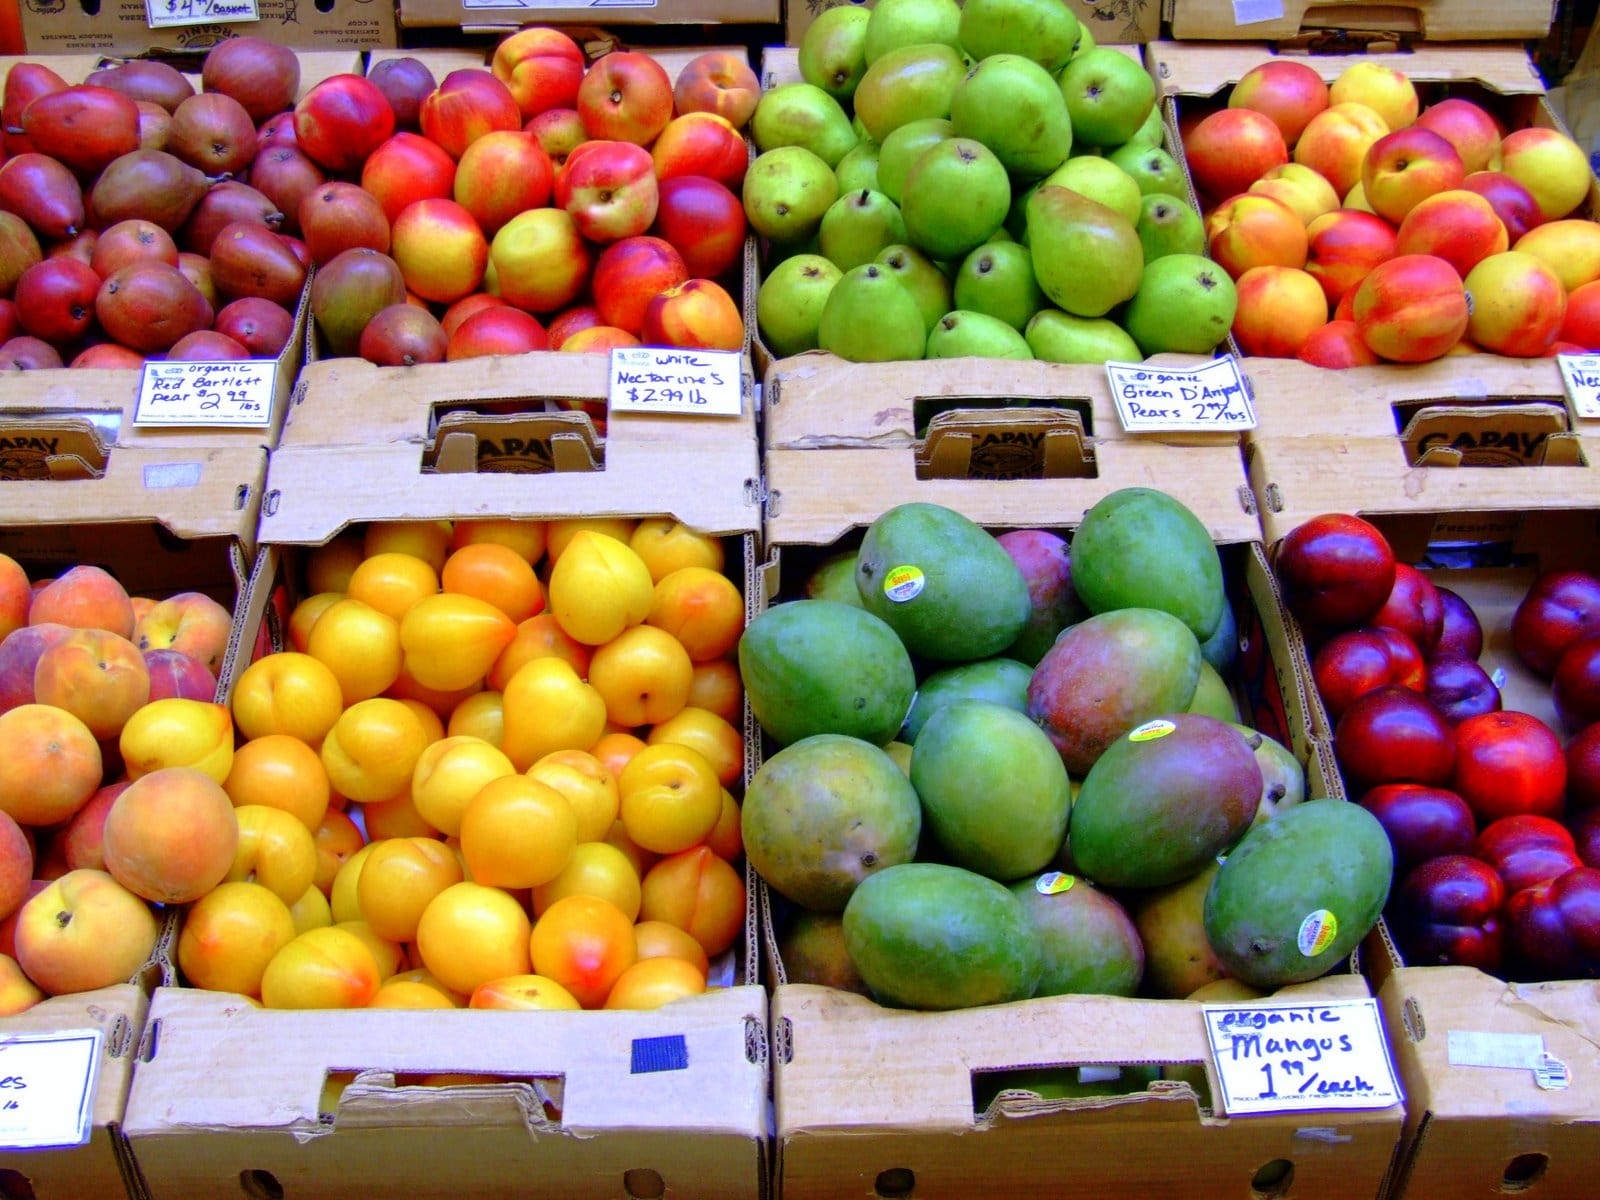 Buy Fruit That's in Season as It Tends to Be Less Expensive